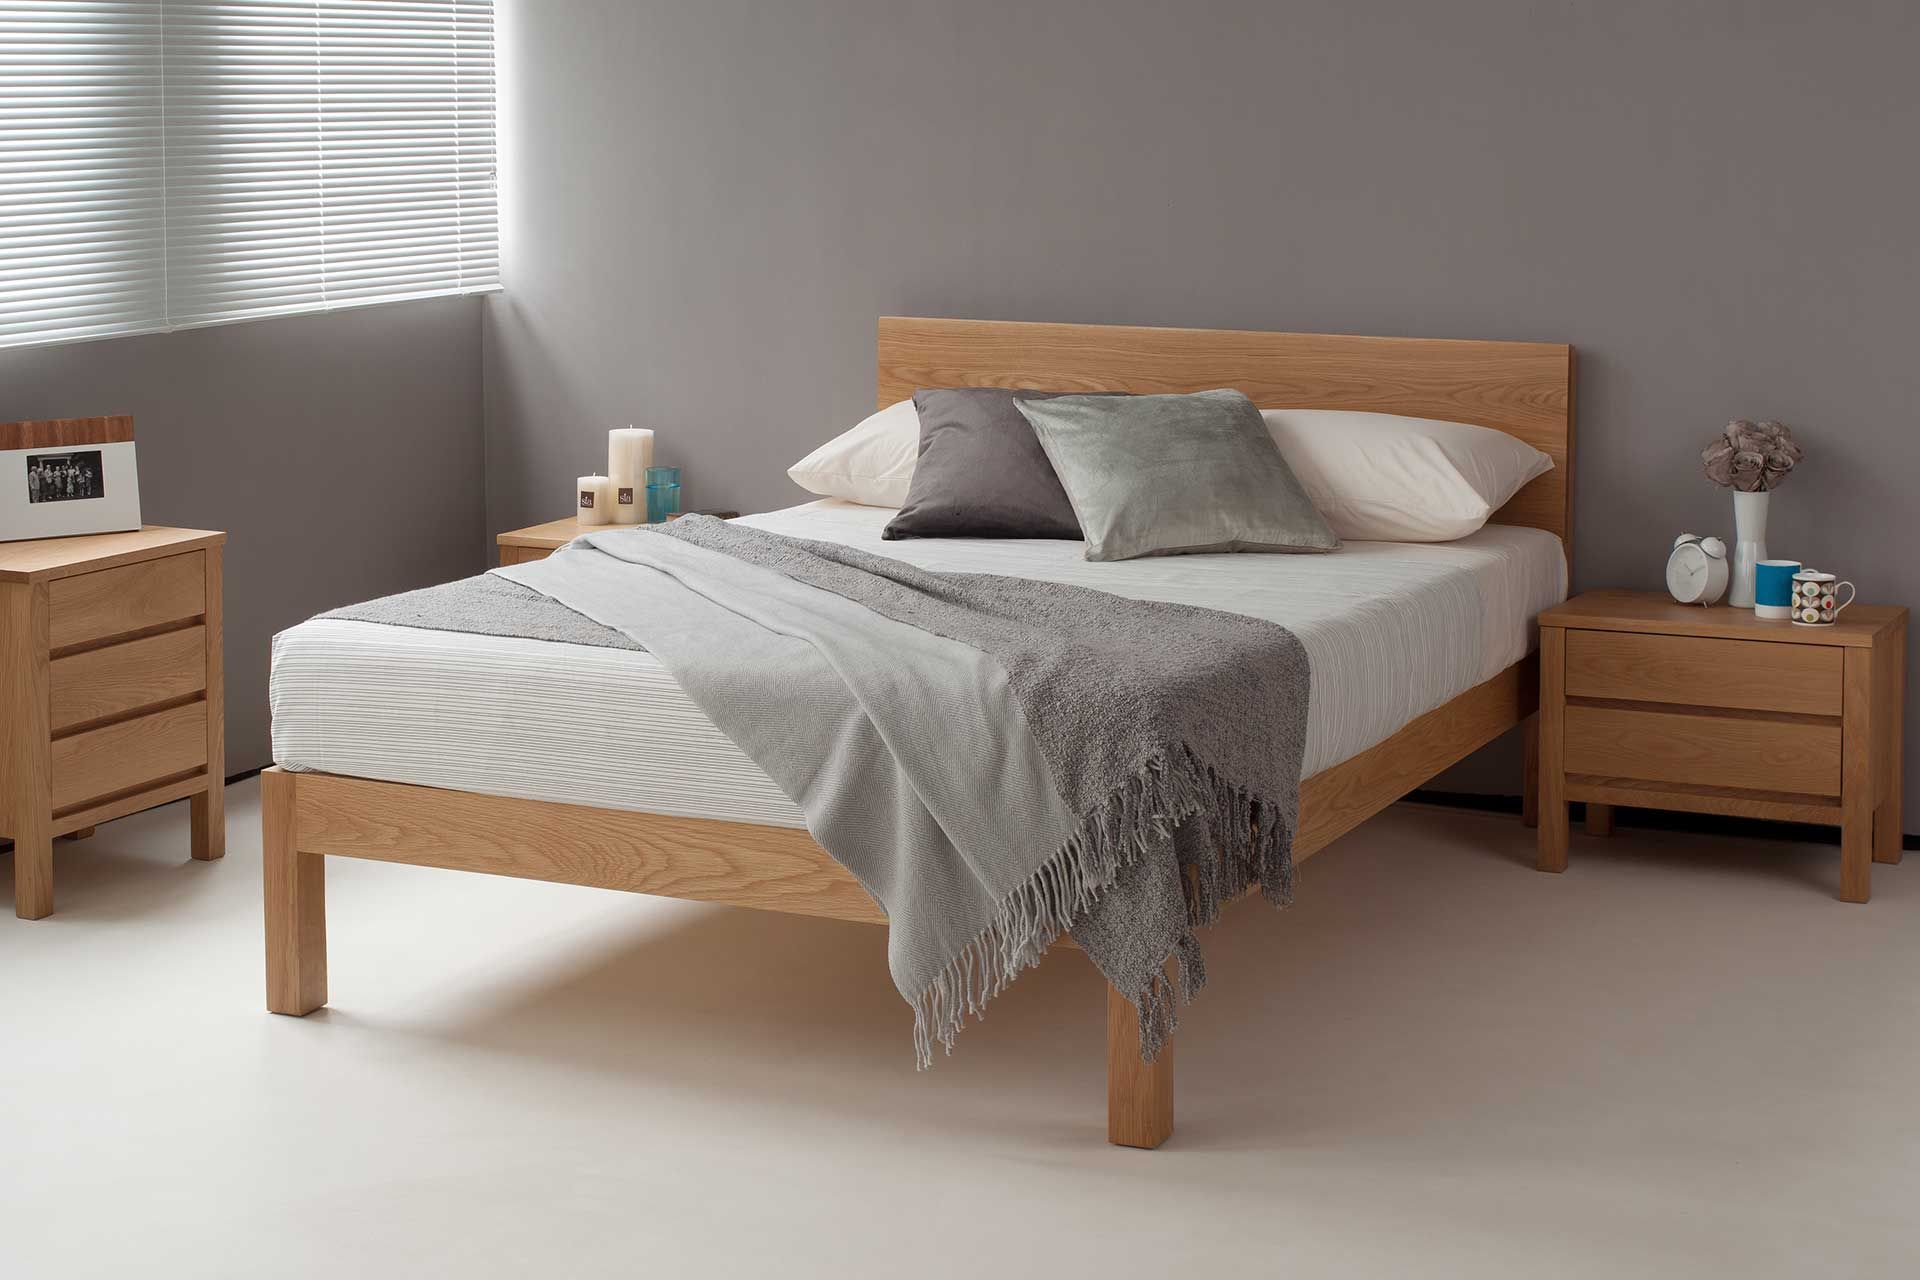 The Hand Built Tibet Is A Stylish, Modern, Solid Wood Bed